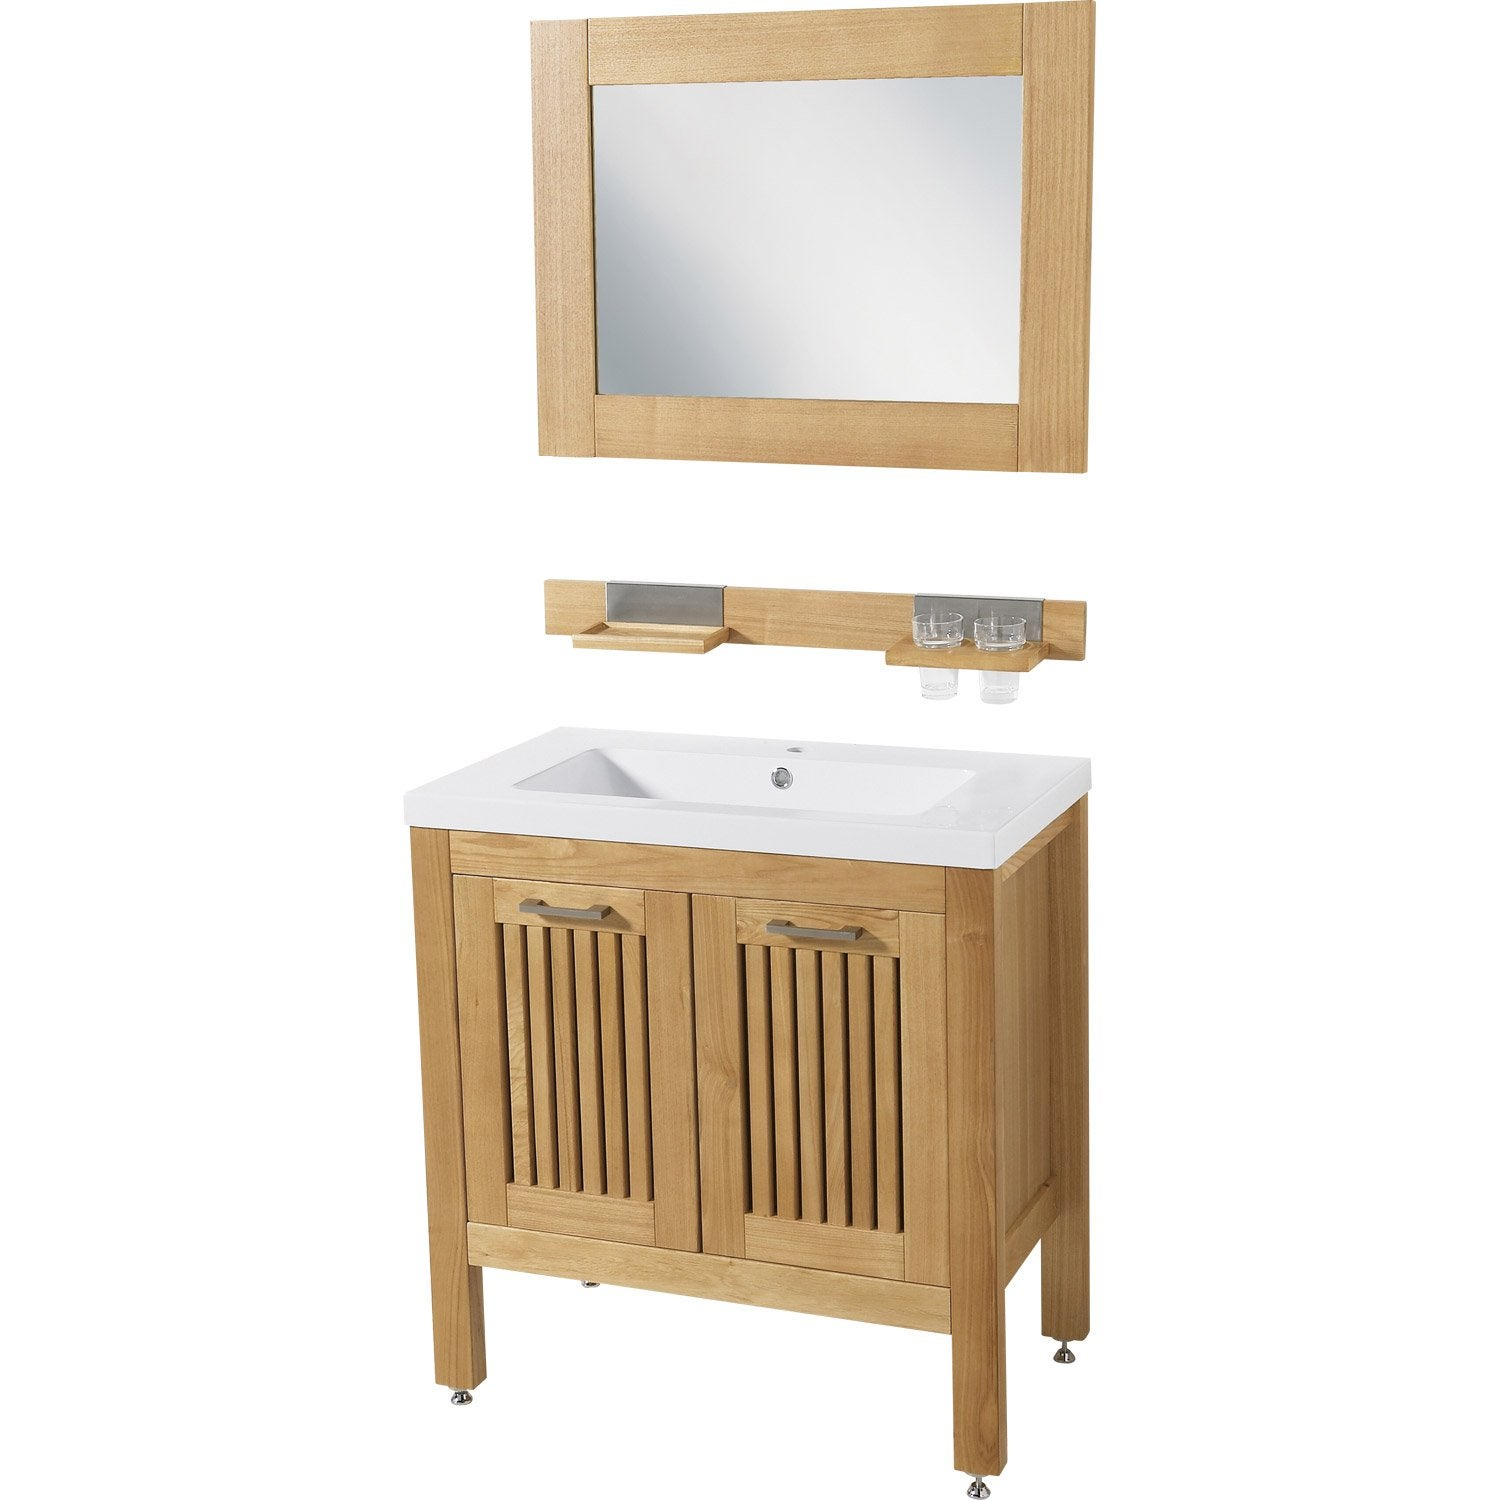 Mobilier table leroy merlin meuble sous lavabo for Meuble sous vasque leroy merlin